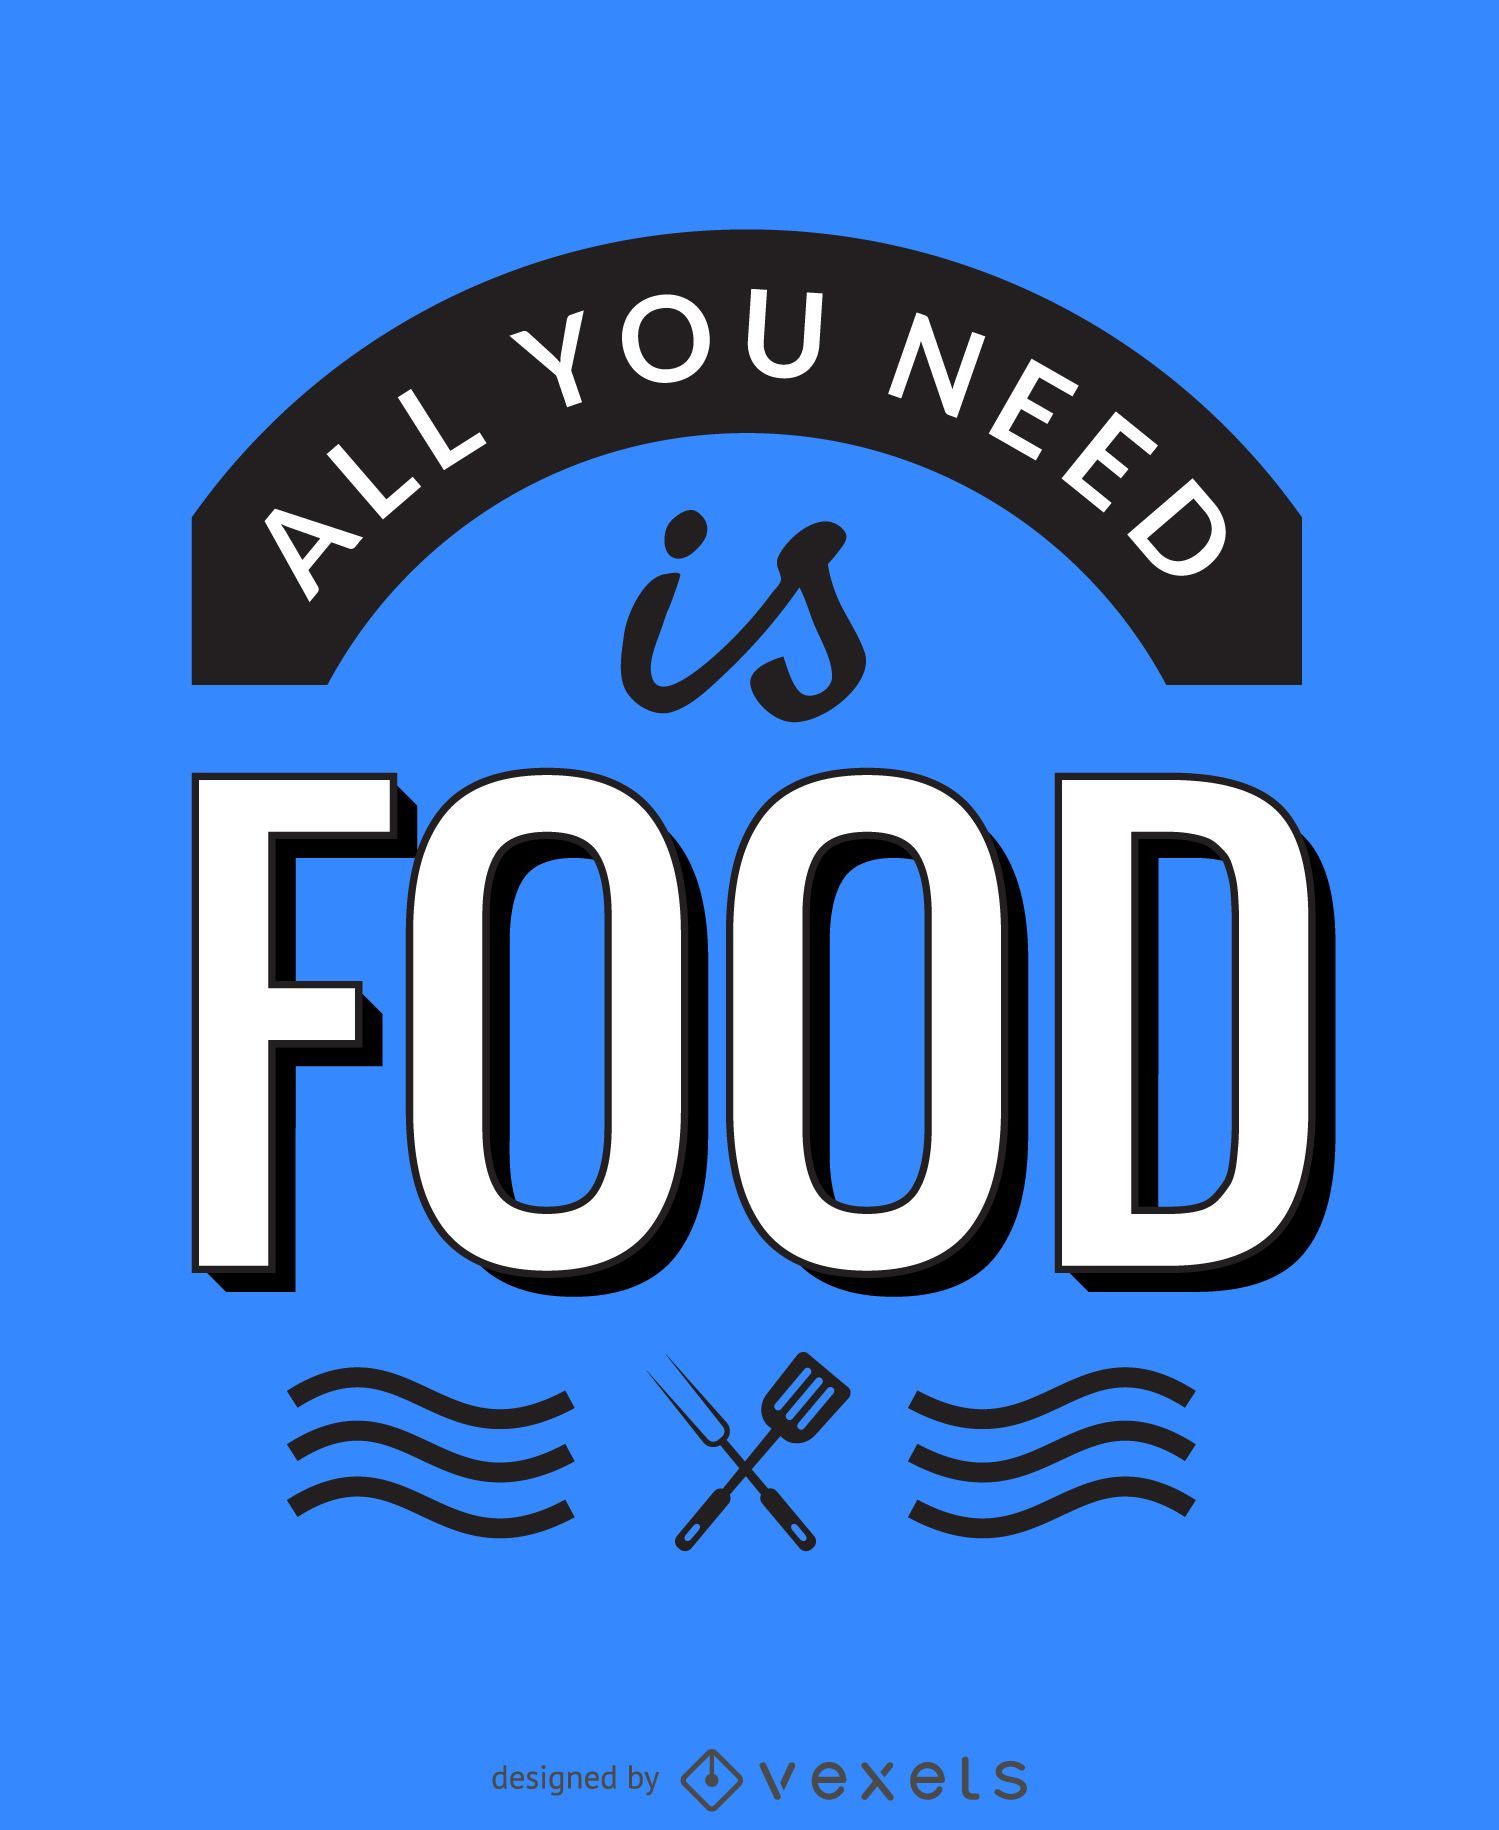 All you need is food poster